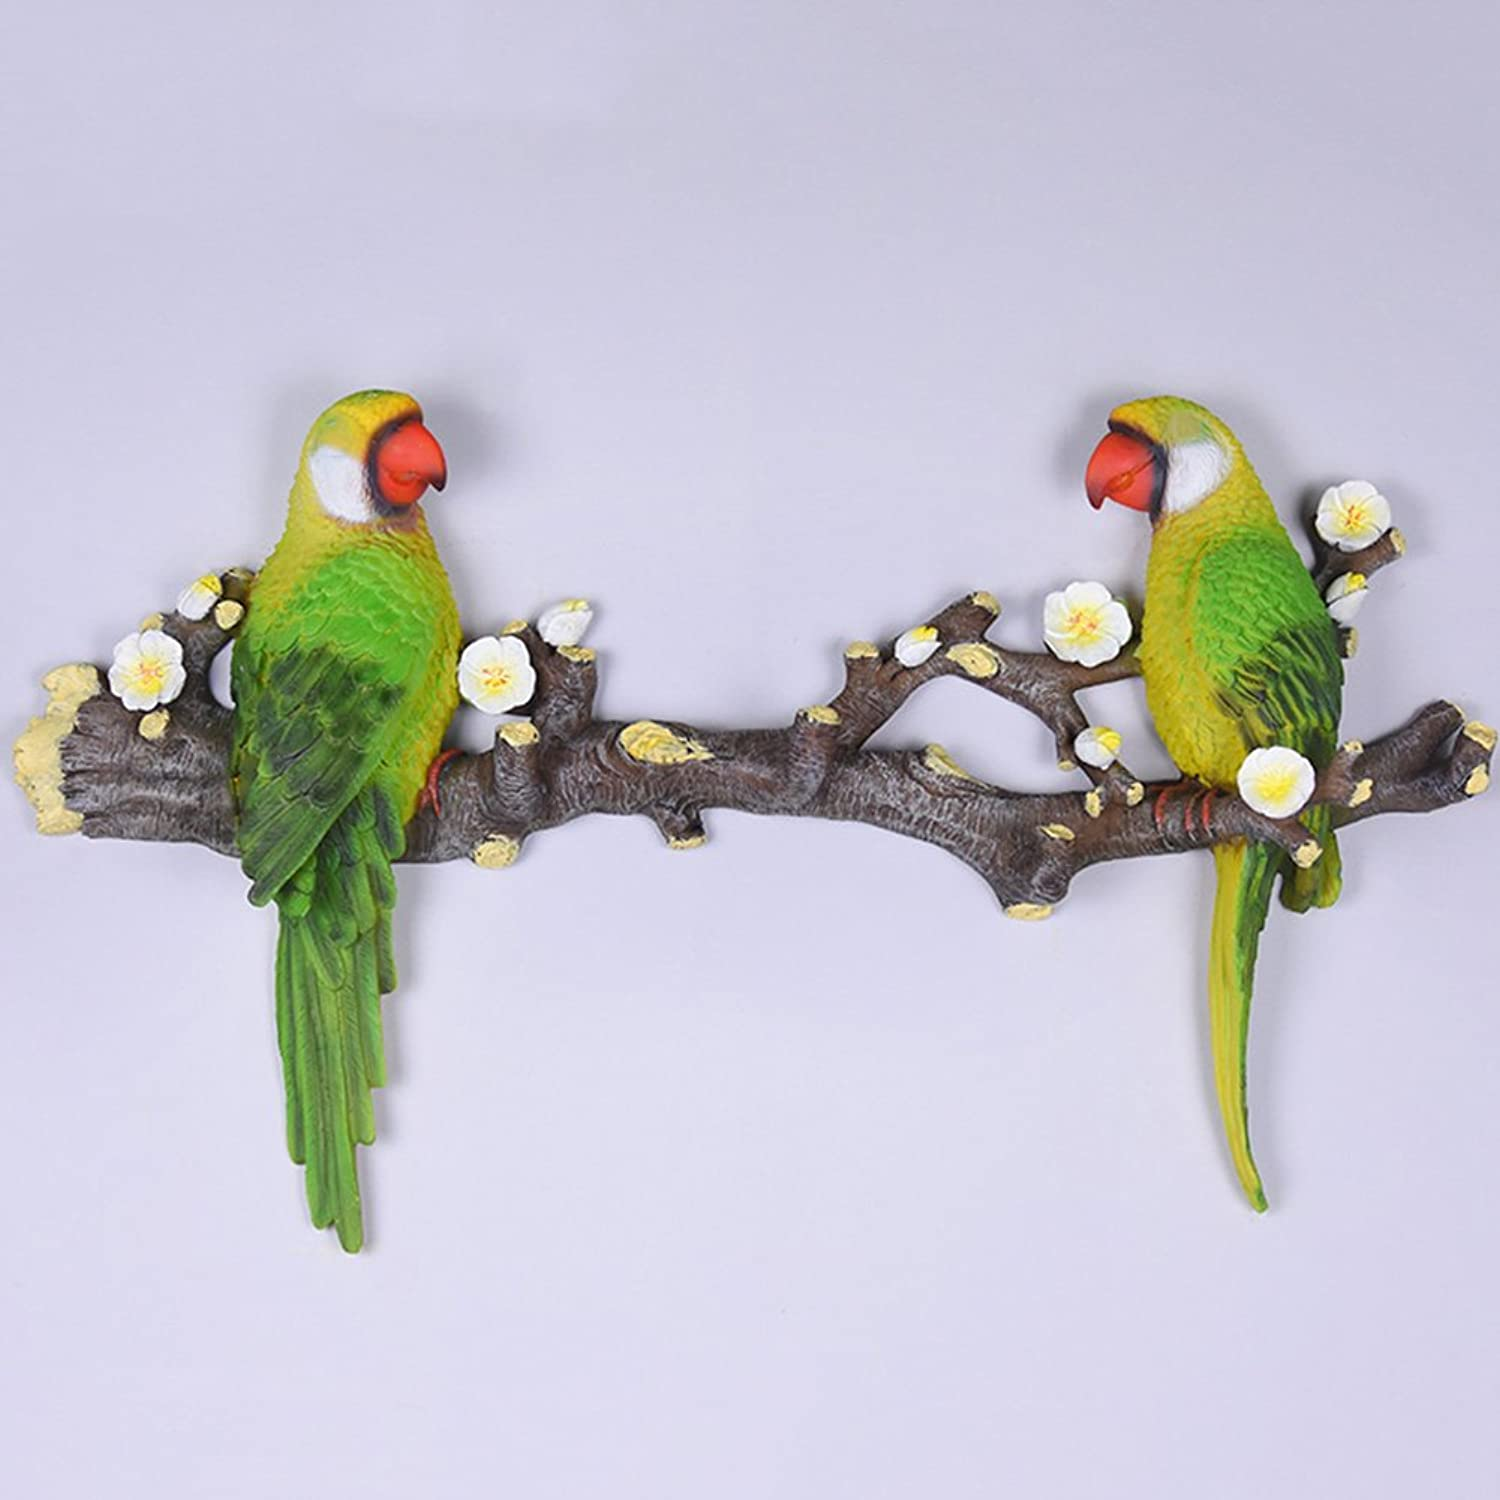 ZEMIN Wall Coat Rack Clothes Hat Hanger Holder Hooks Fashion Wood Birds Style, 2 colors, 3 Sizes Available ( color   Green , Size   52x29CM )